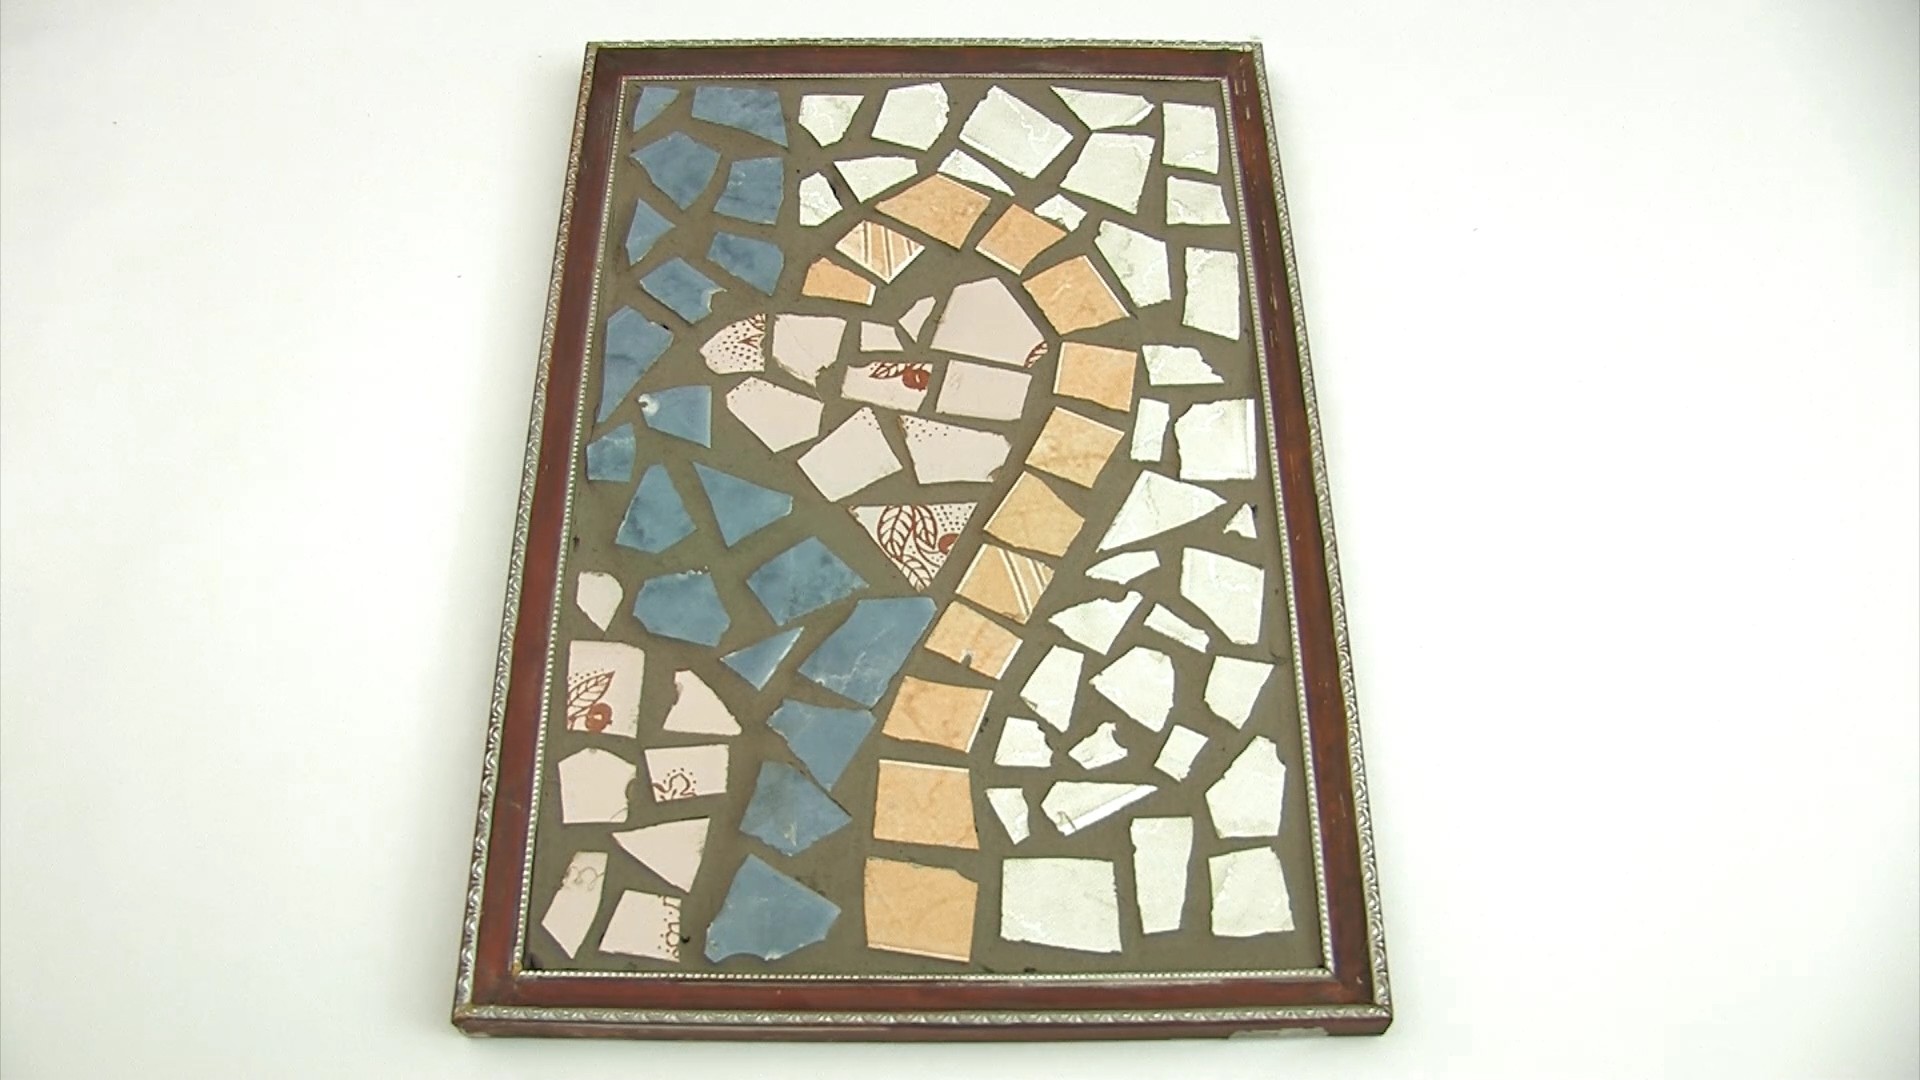 Mosaik Bad Set How To Make A Mosaic From Broken Tiles 10 Steps With Pictures